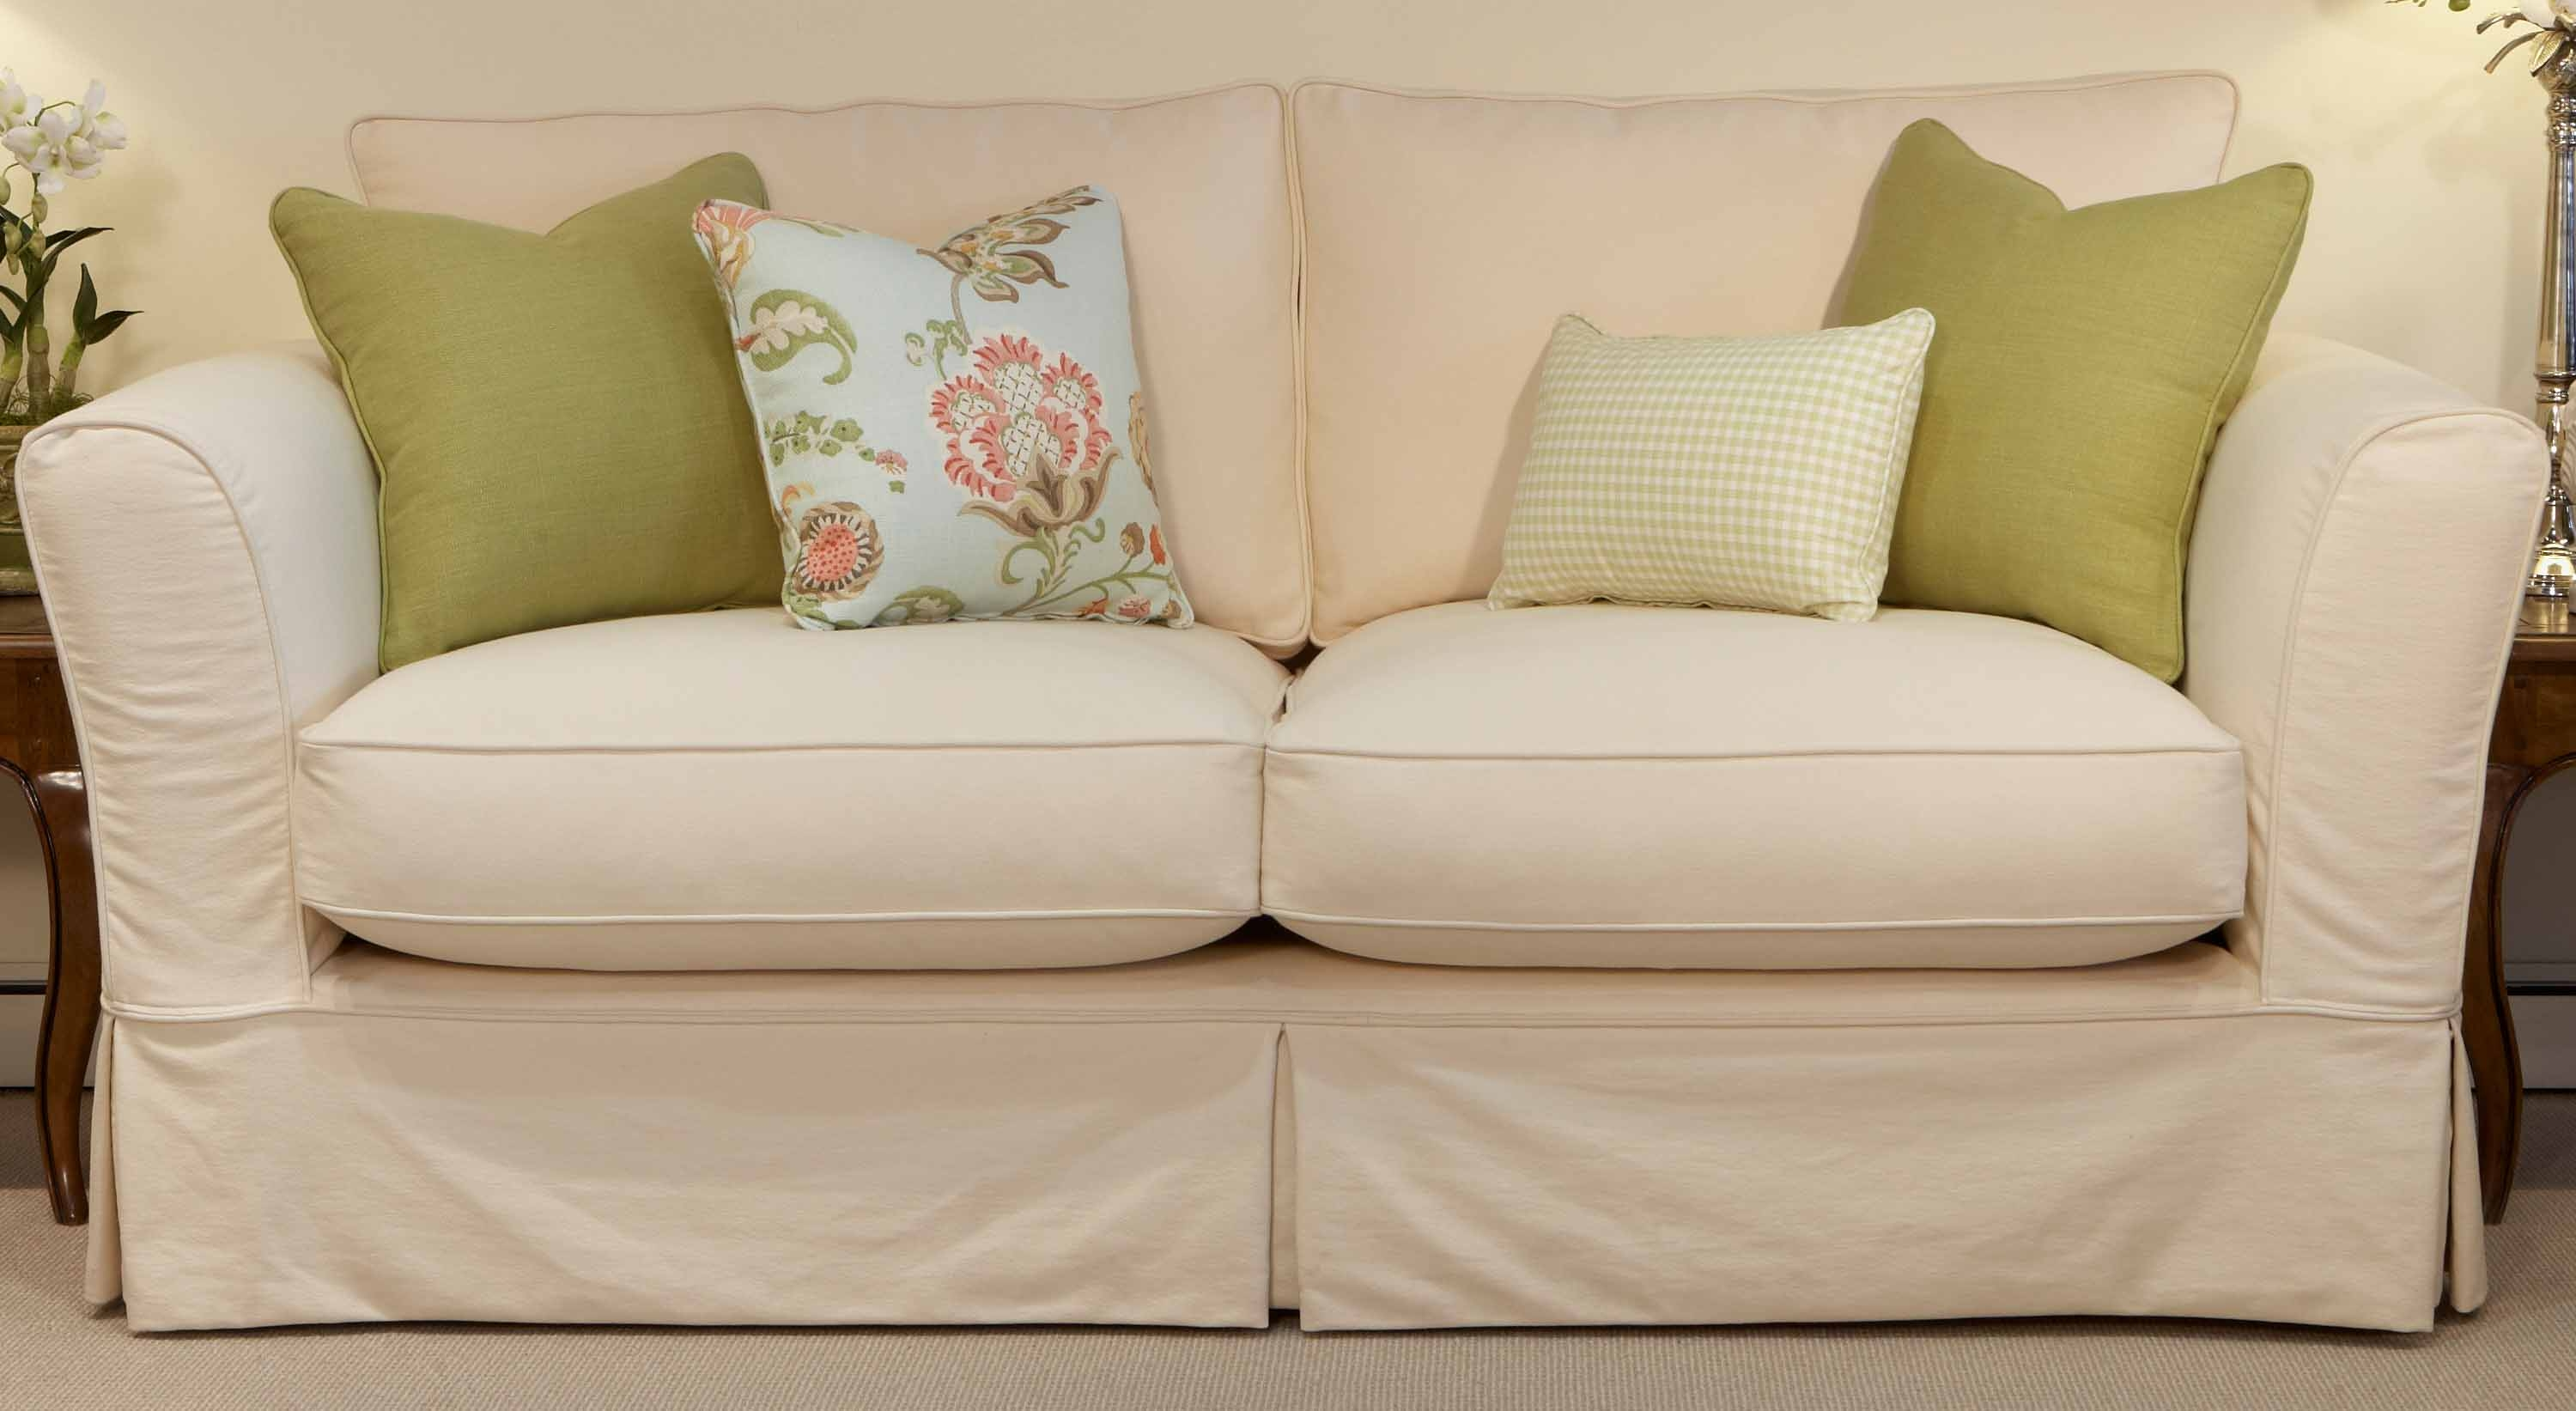 Custom Made Loose Covers Sofas International Throughout Sofas With Removable Covers (Image 2 of 15)